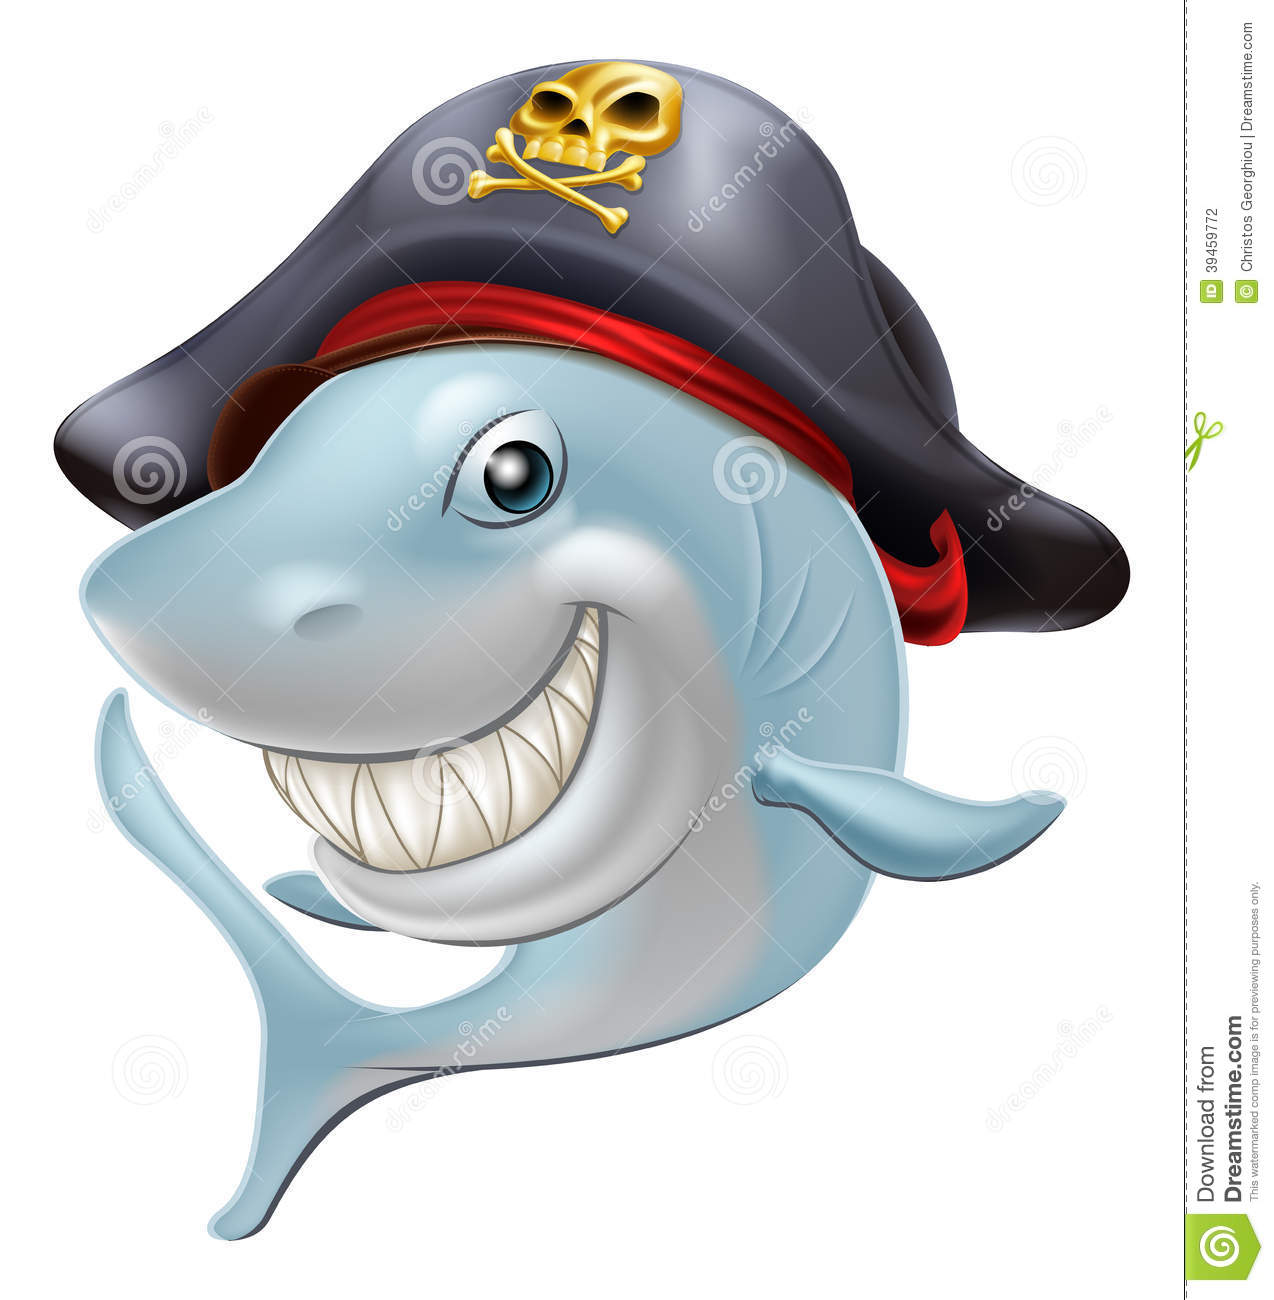 Bande dessinée de requin de pirate